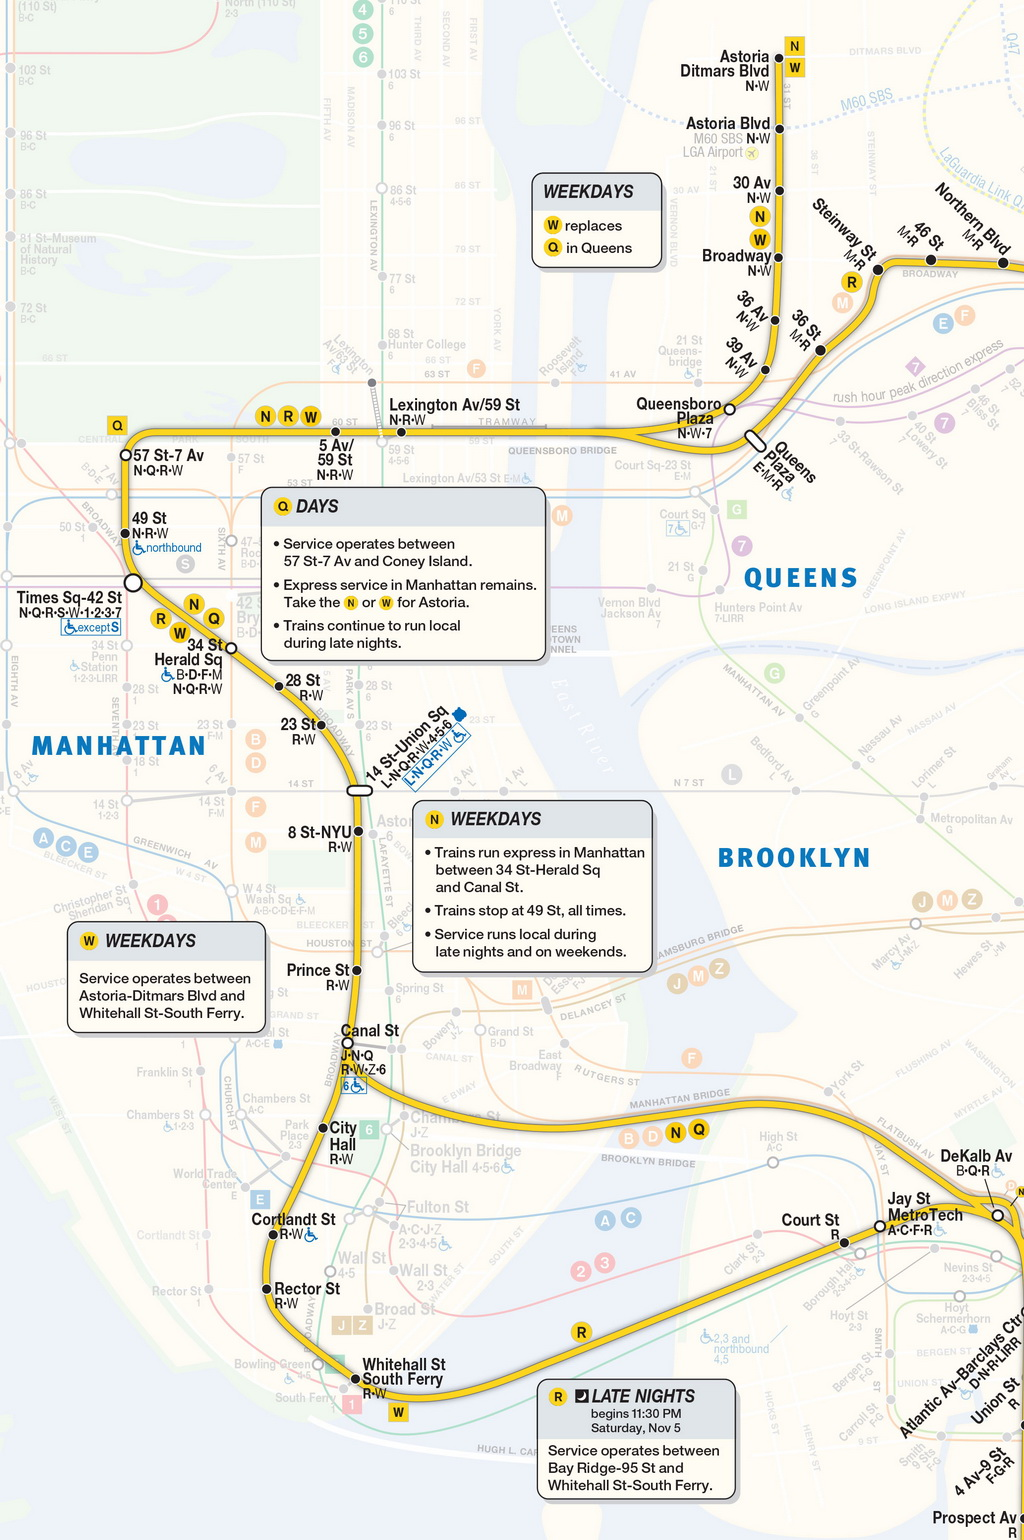 mta.info | NQRW Guide on mta rail map, mumbai suburban railway map, rail lines map, new york city mta map,